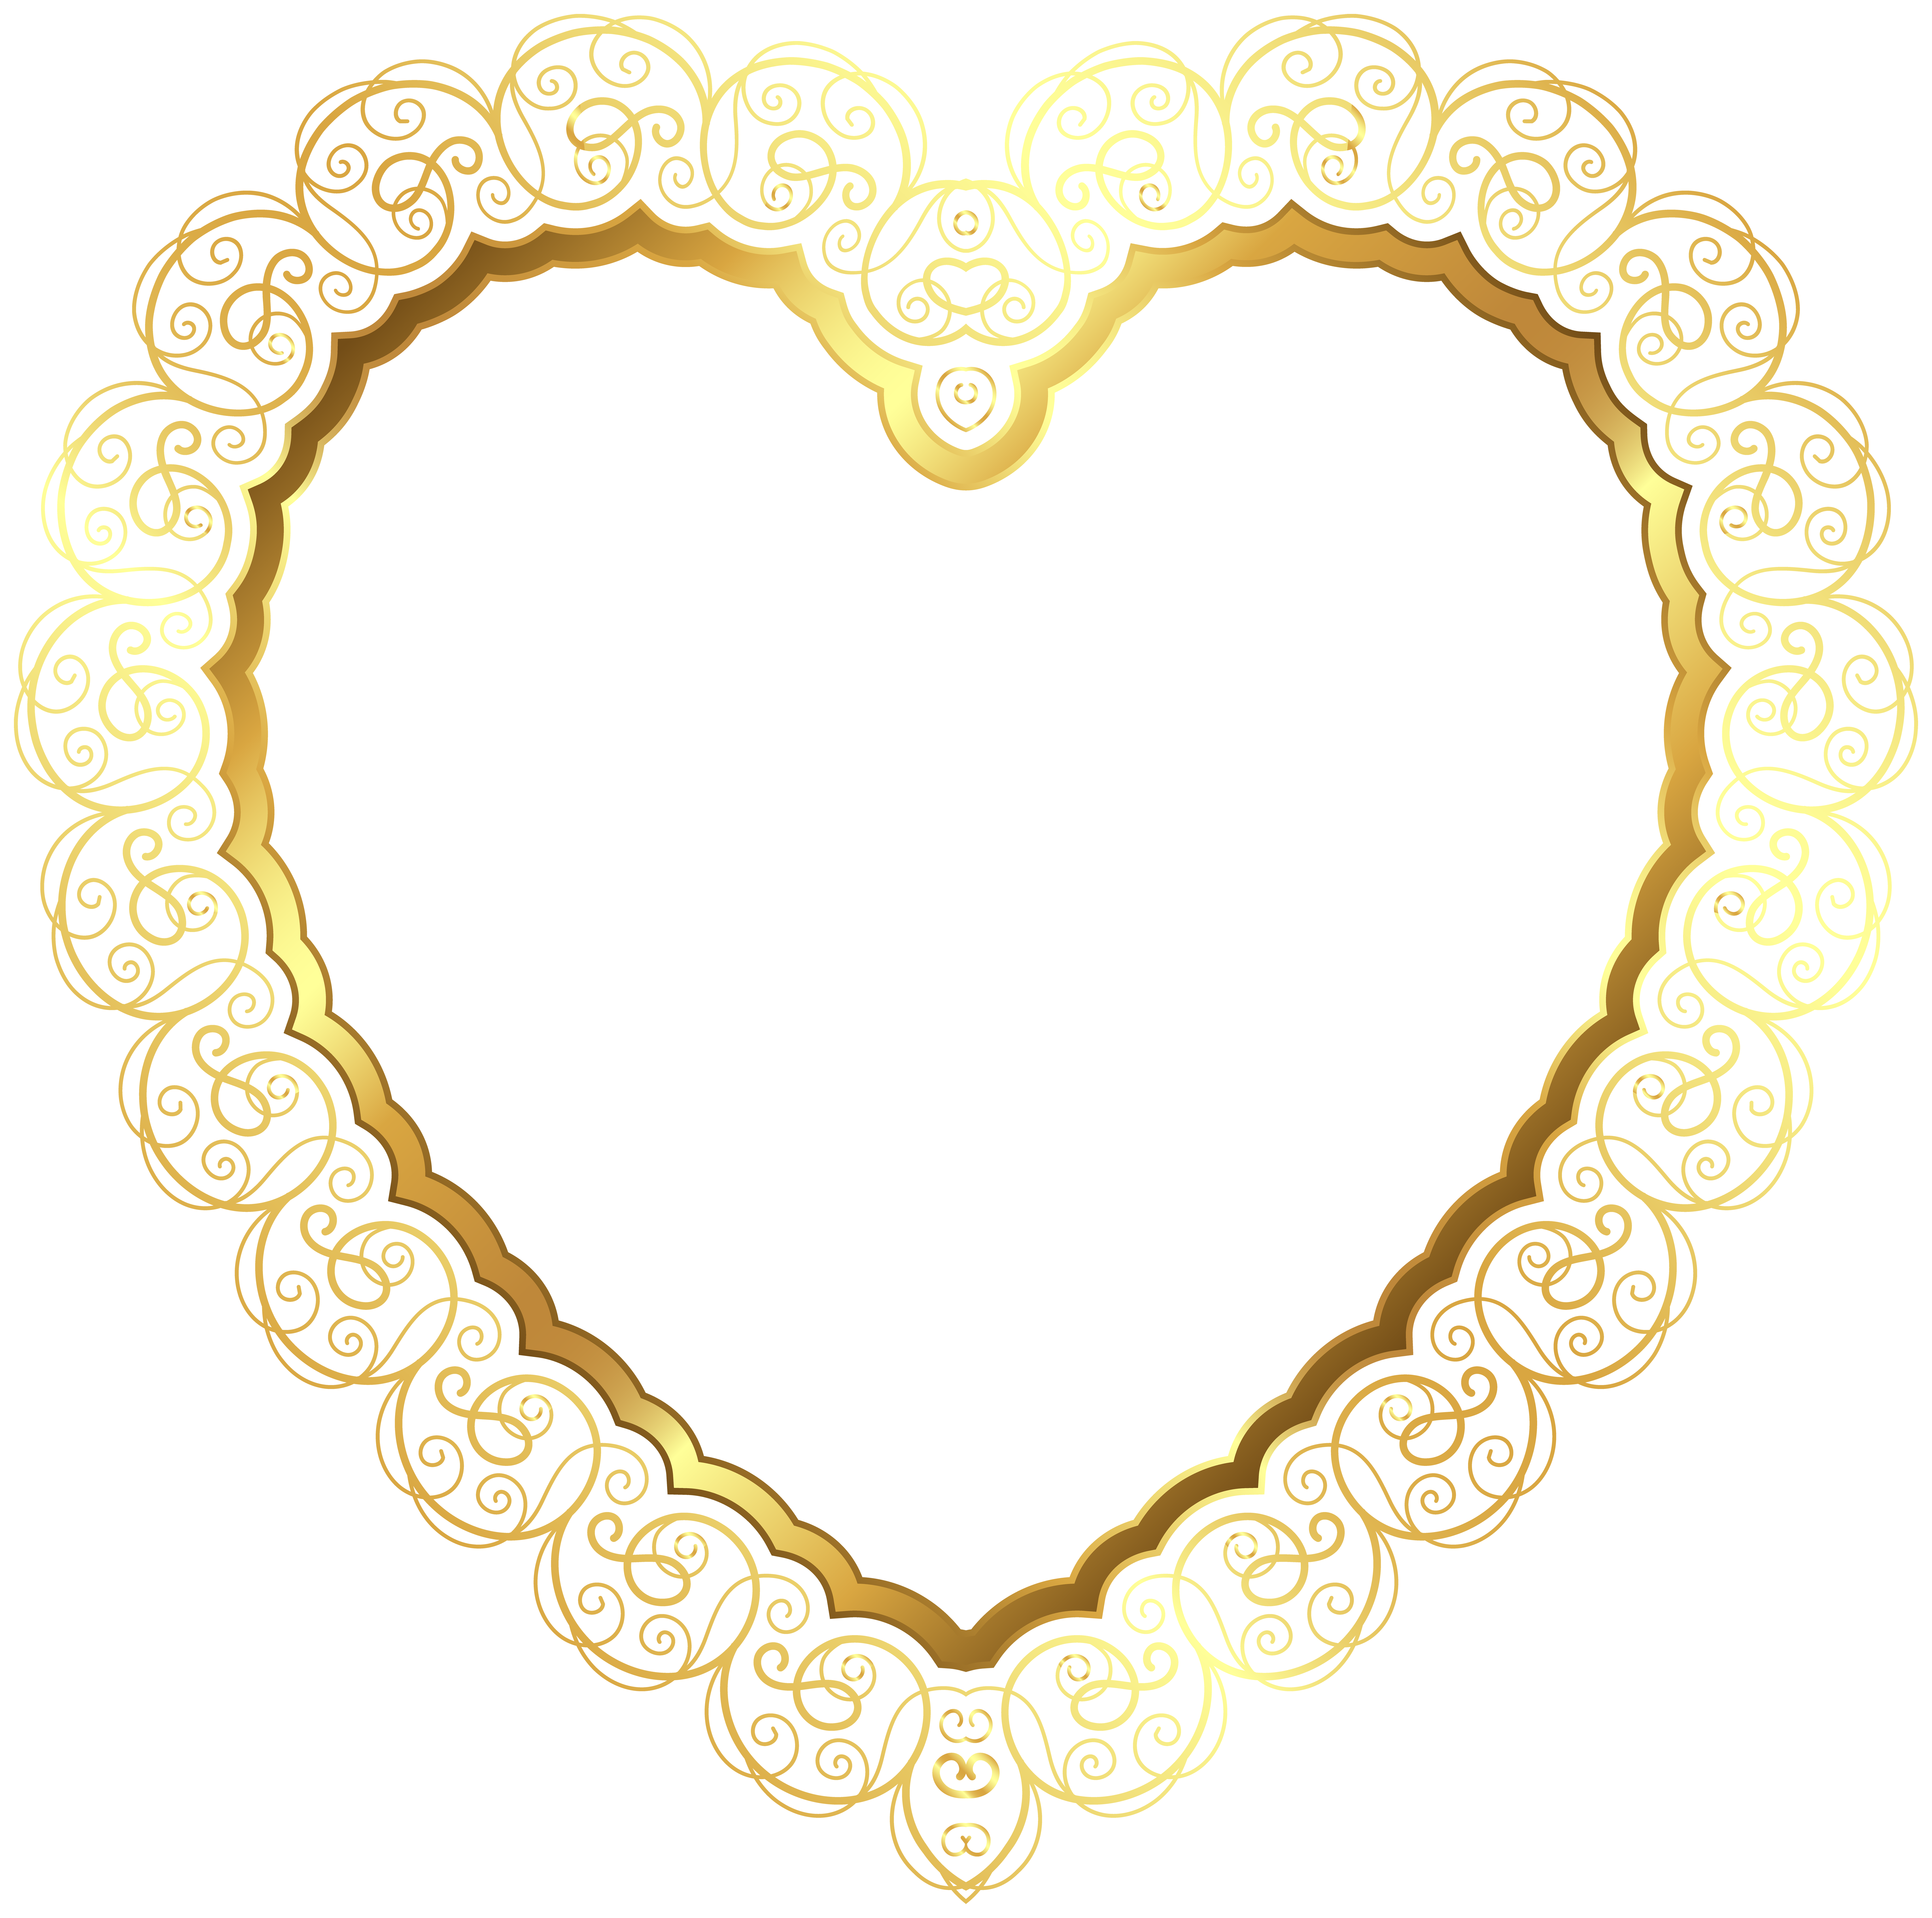 Free heart border clipart graphic free library Heart Border Transparent PNG Clip Art | Gallery Yopriceville - High ... graphic free library